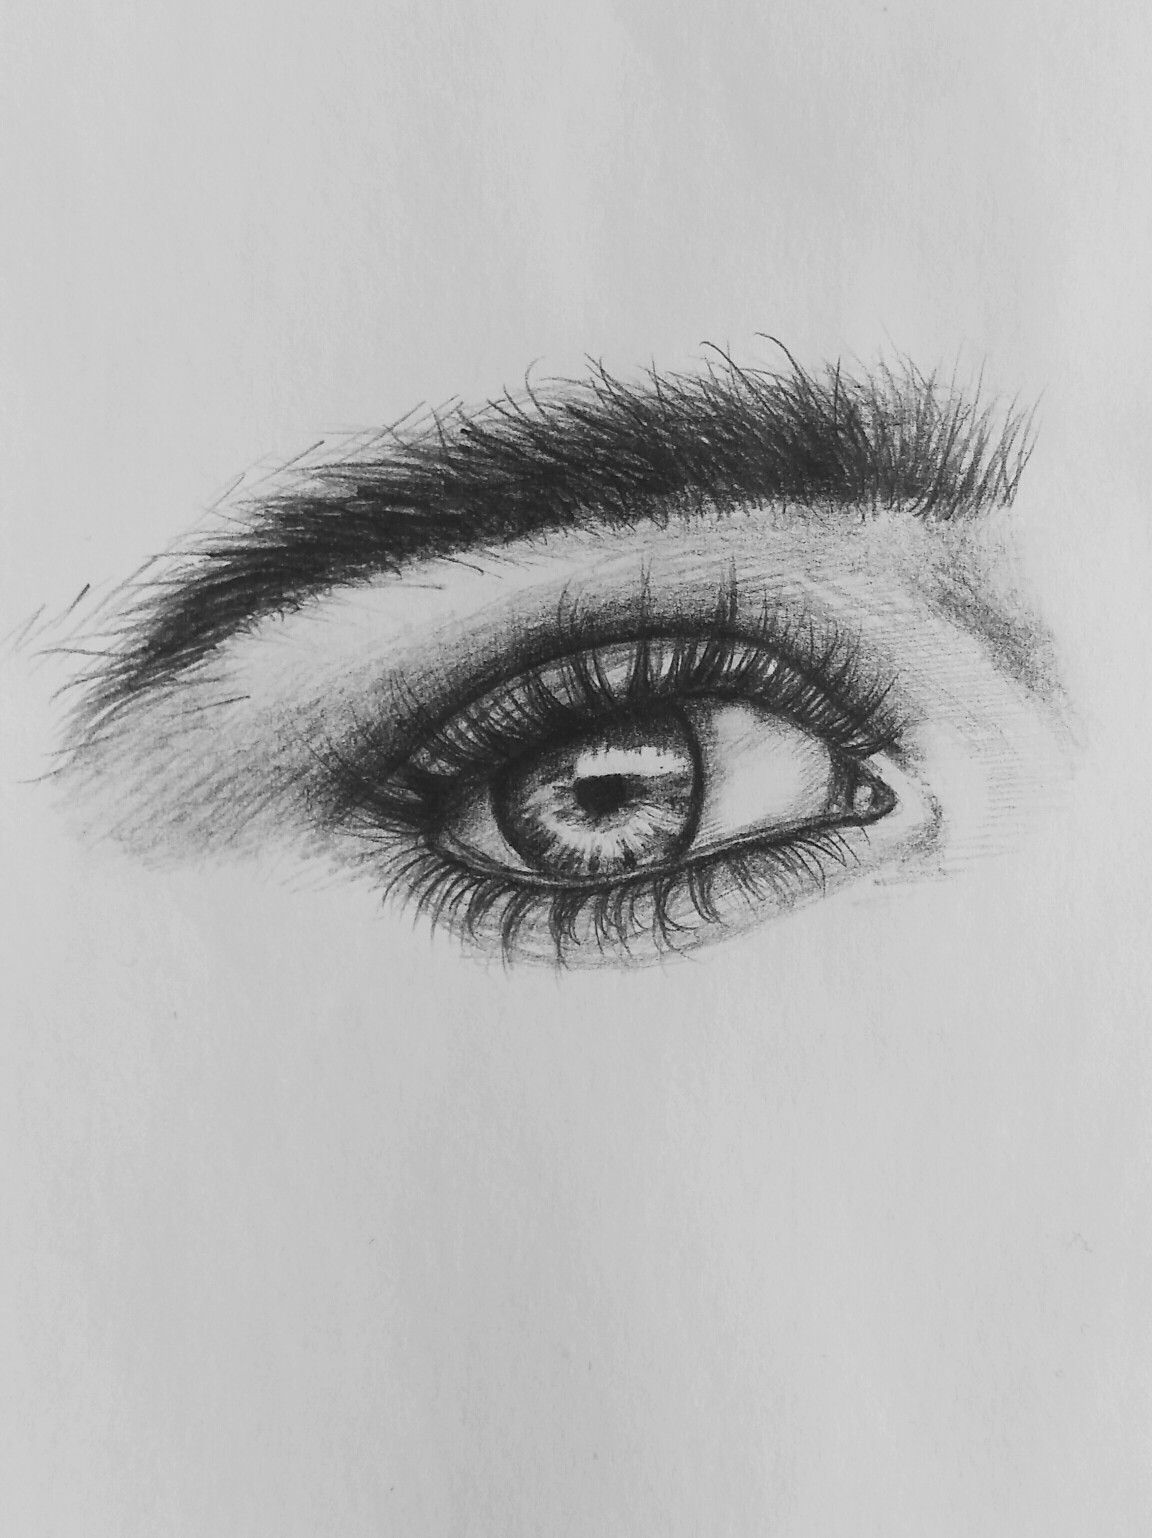 Realistic Eye Drawing by #xolgaix • Instagram @olgairak • #eyes #eyedrawing #realistic #sketchbook #realisticeye